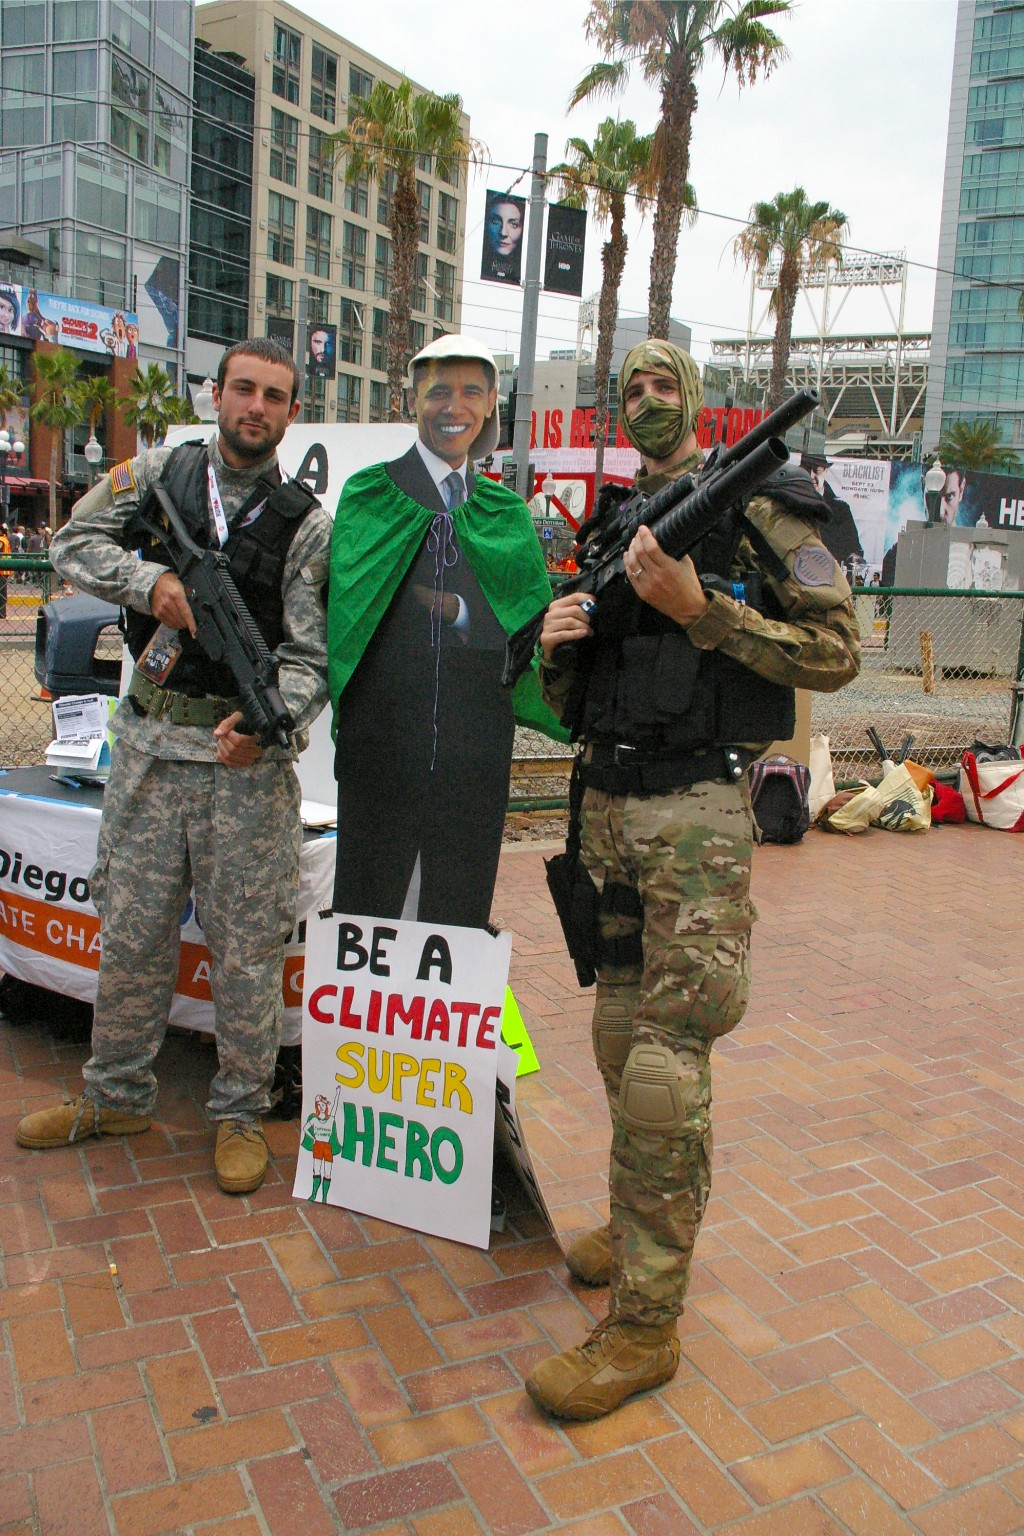 climate superheroes!